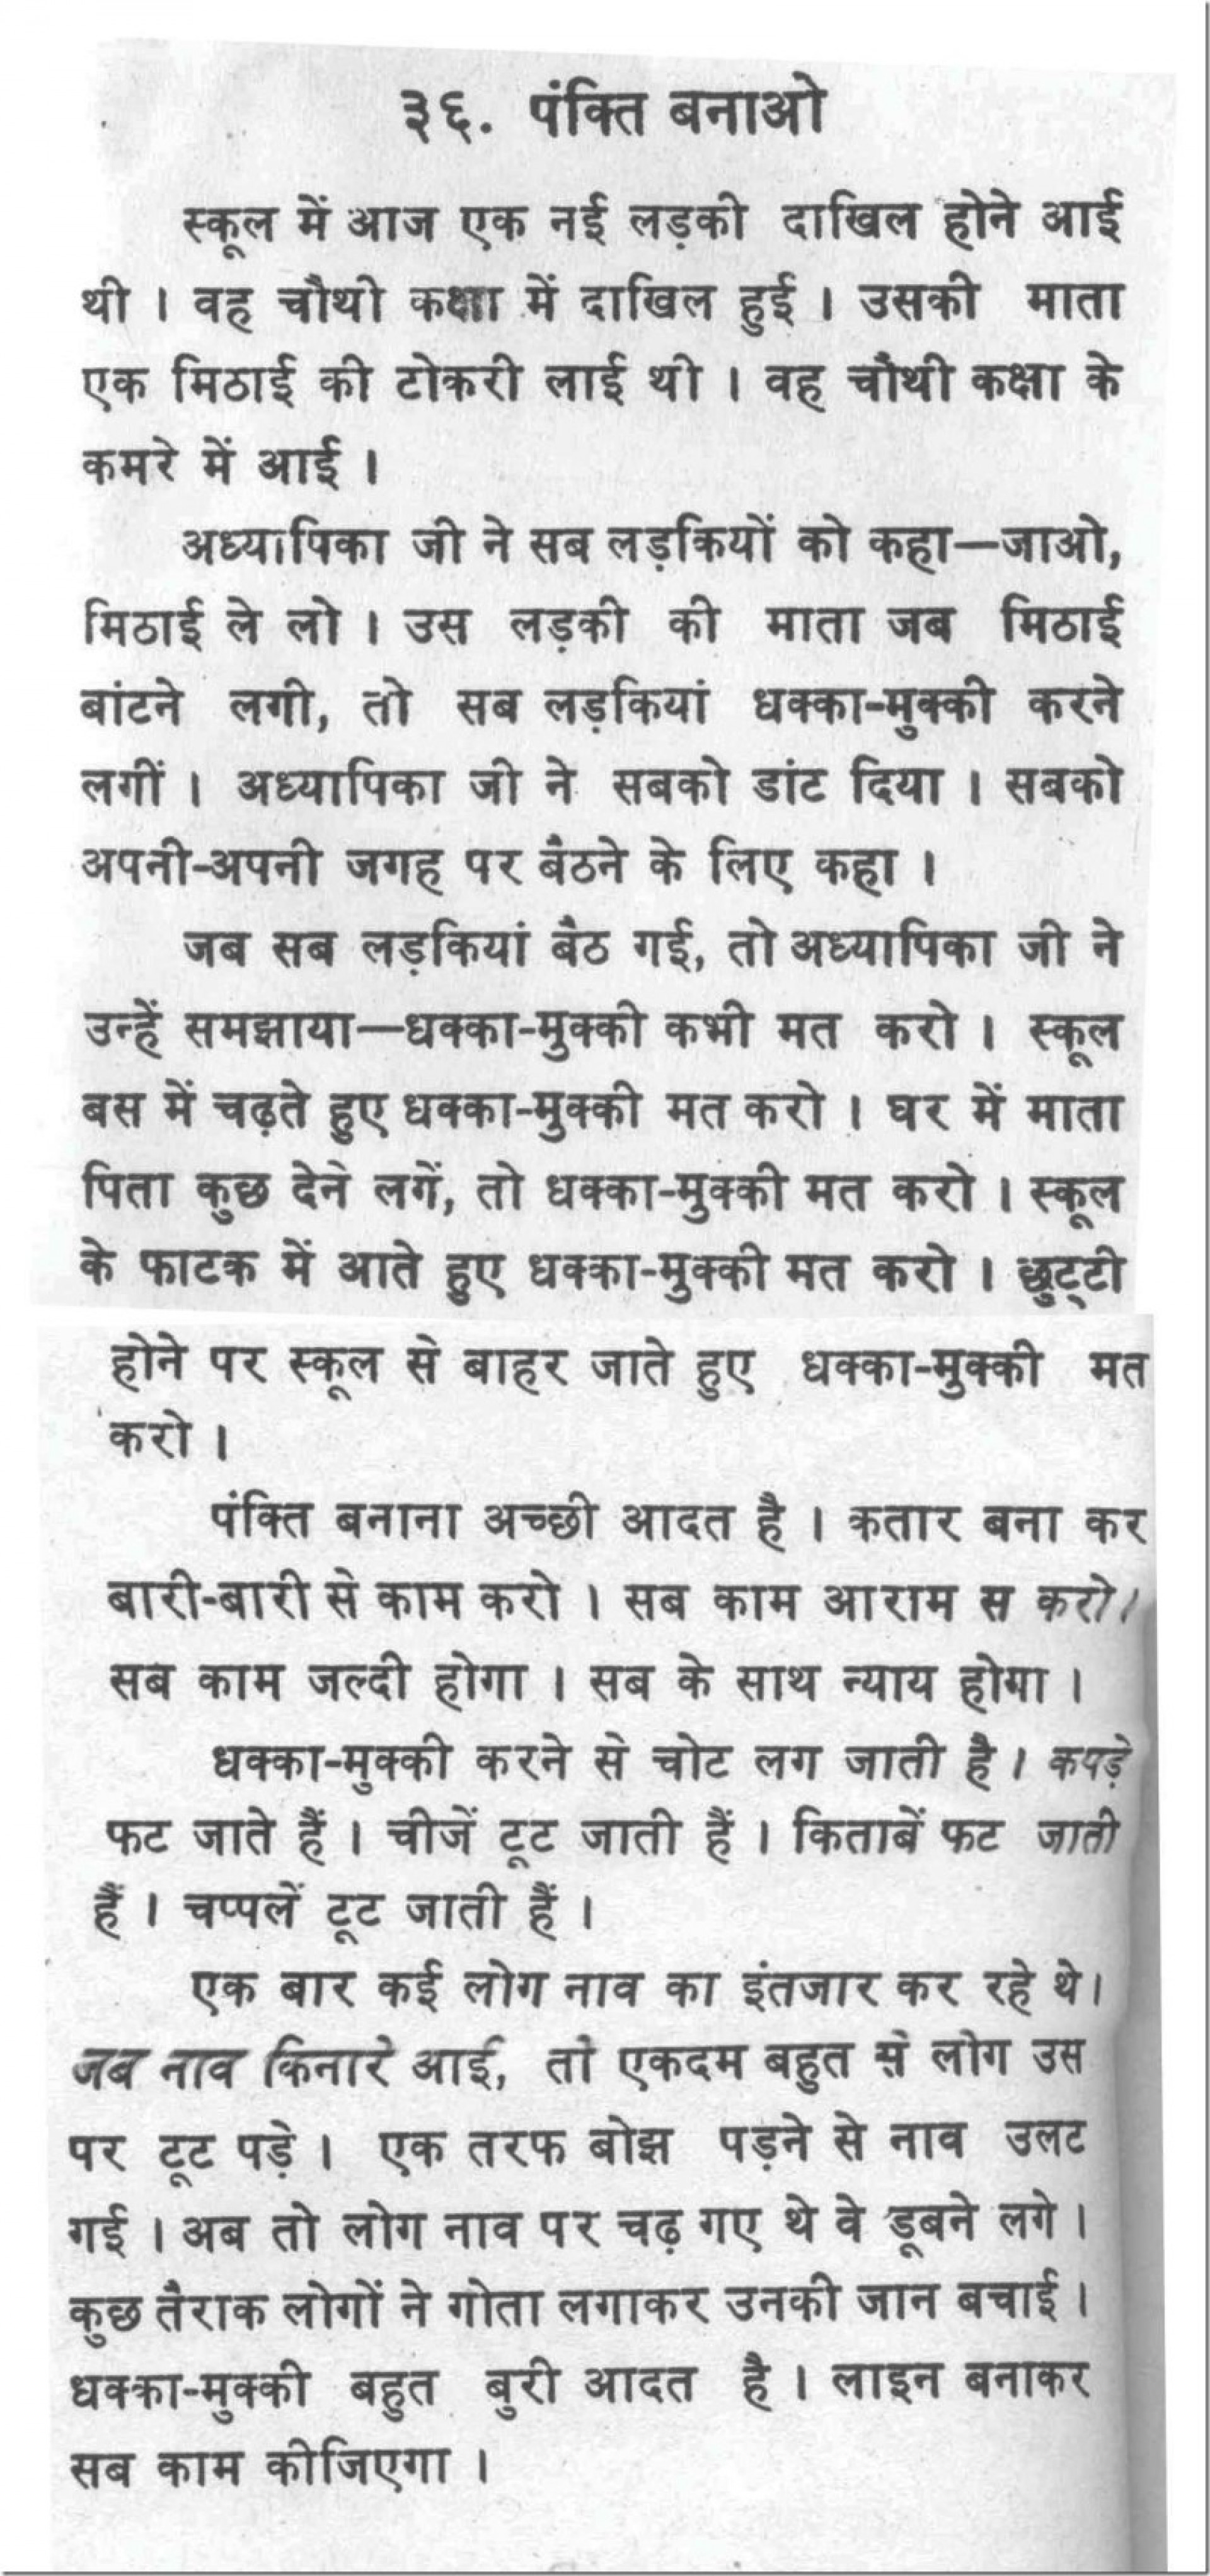 003 10030 Thumbresize8002c1704 Good Habits Essay In Hindi Exceptional And Bad Healthy Eating 1920